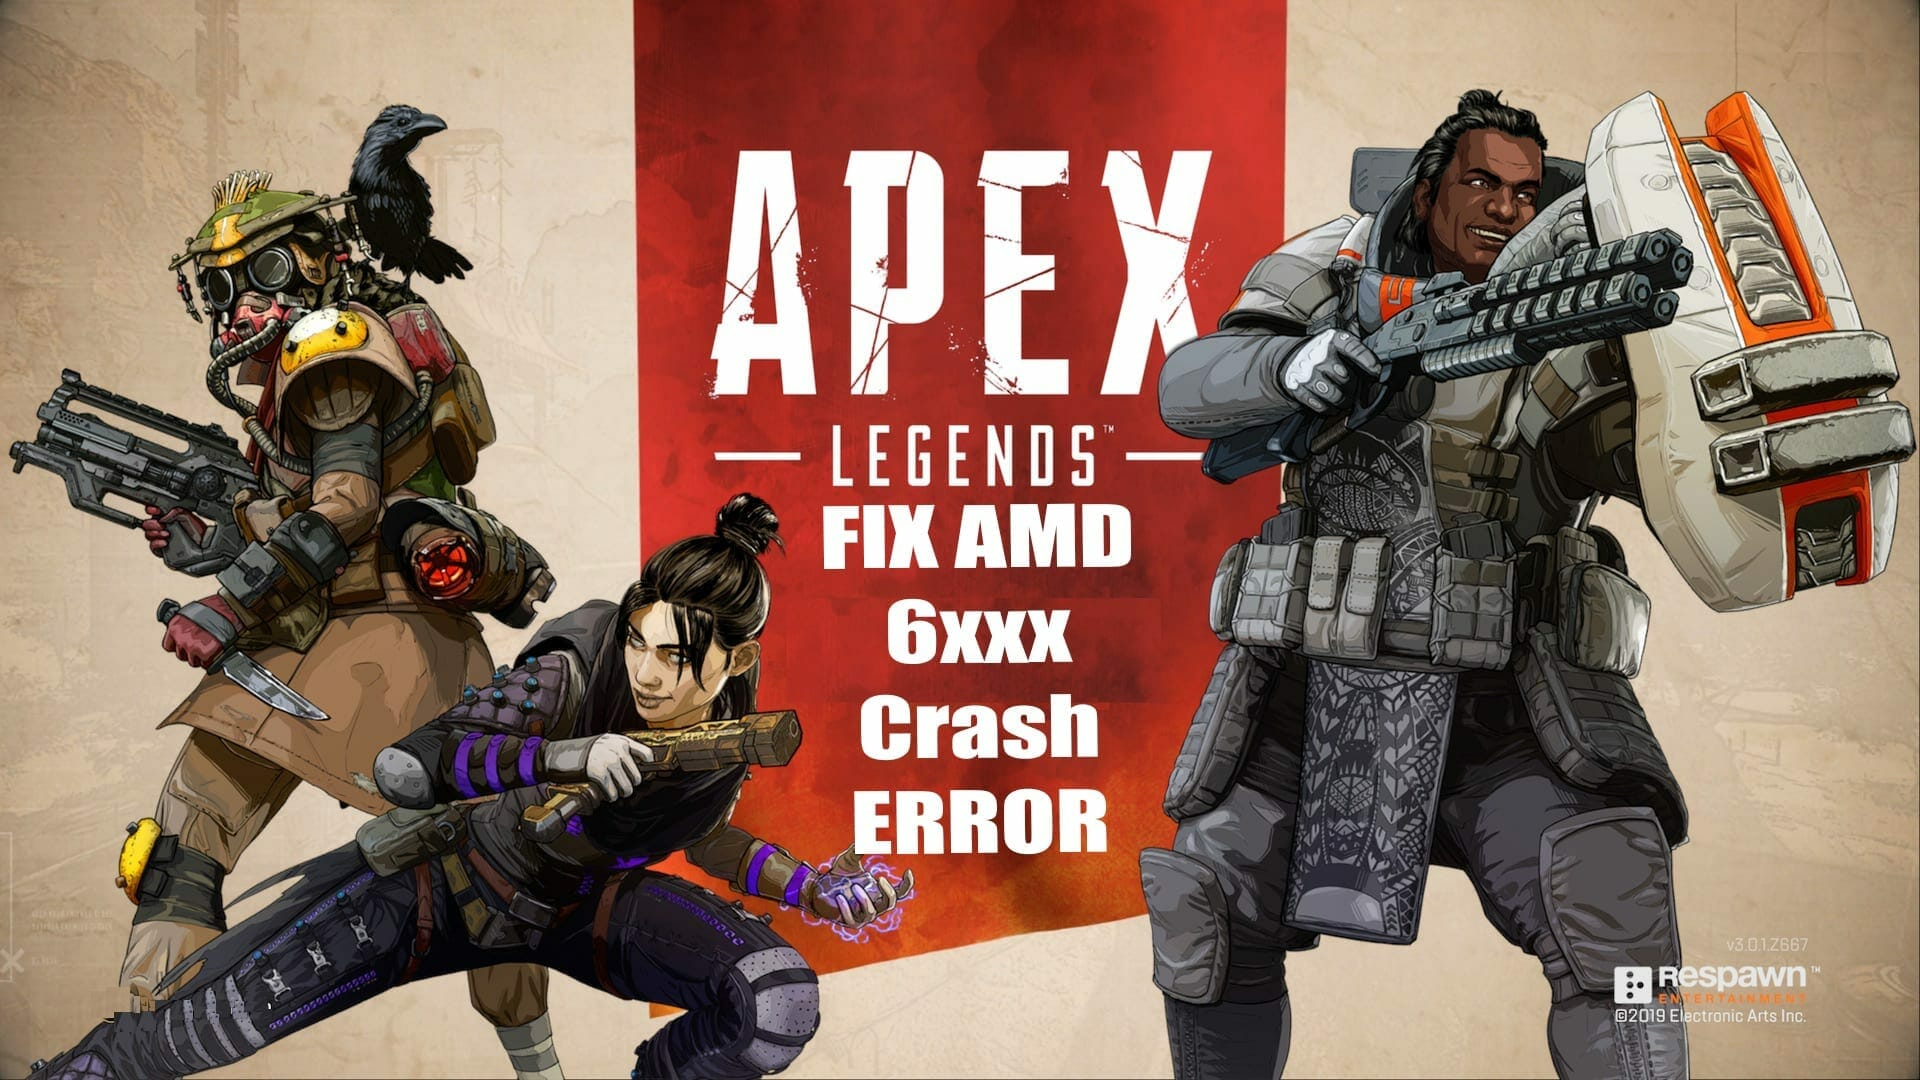 EA could bring hit battle royale game Apex Legends to mobile